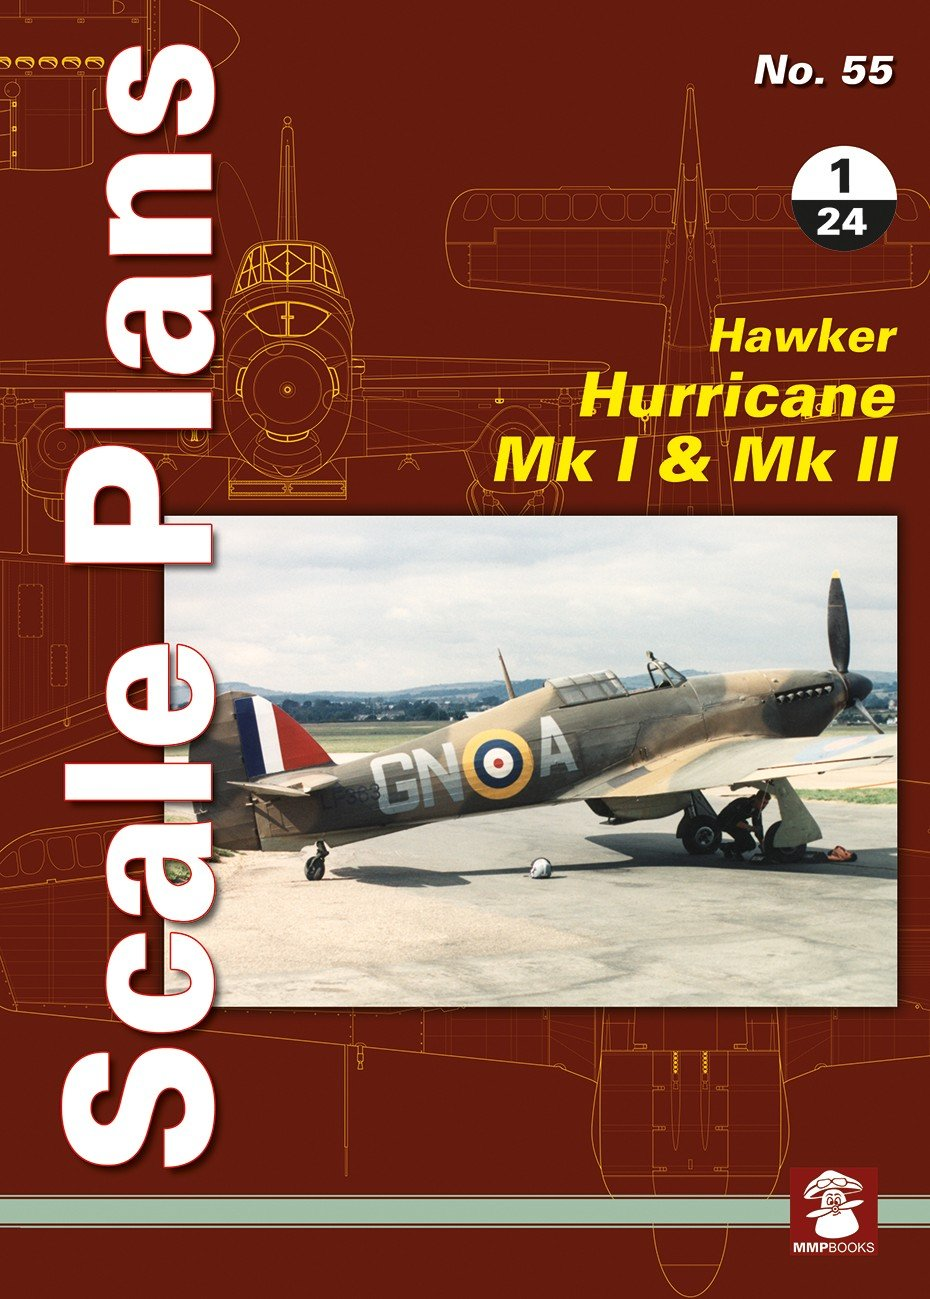 Scale Plans No. 55 Hawker Hurricane Mk I & Mk II in 1/24